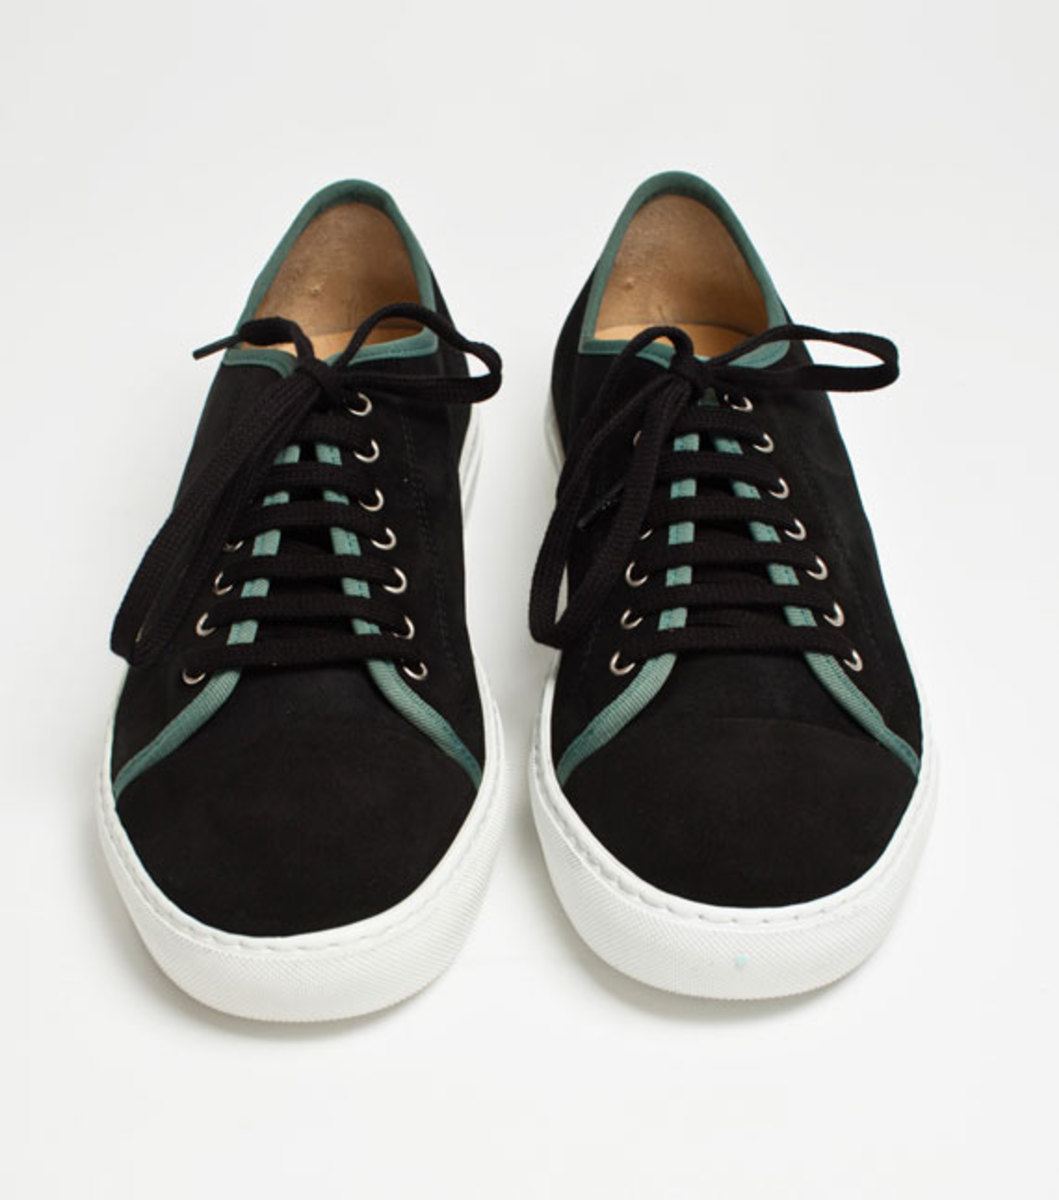 comme-des-garcons-shirt-the-generic-man-fall-2012-footwear-collection-11